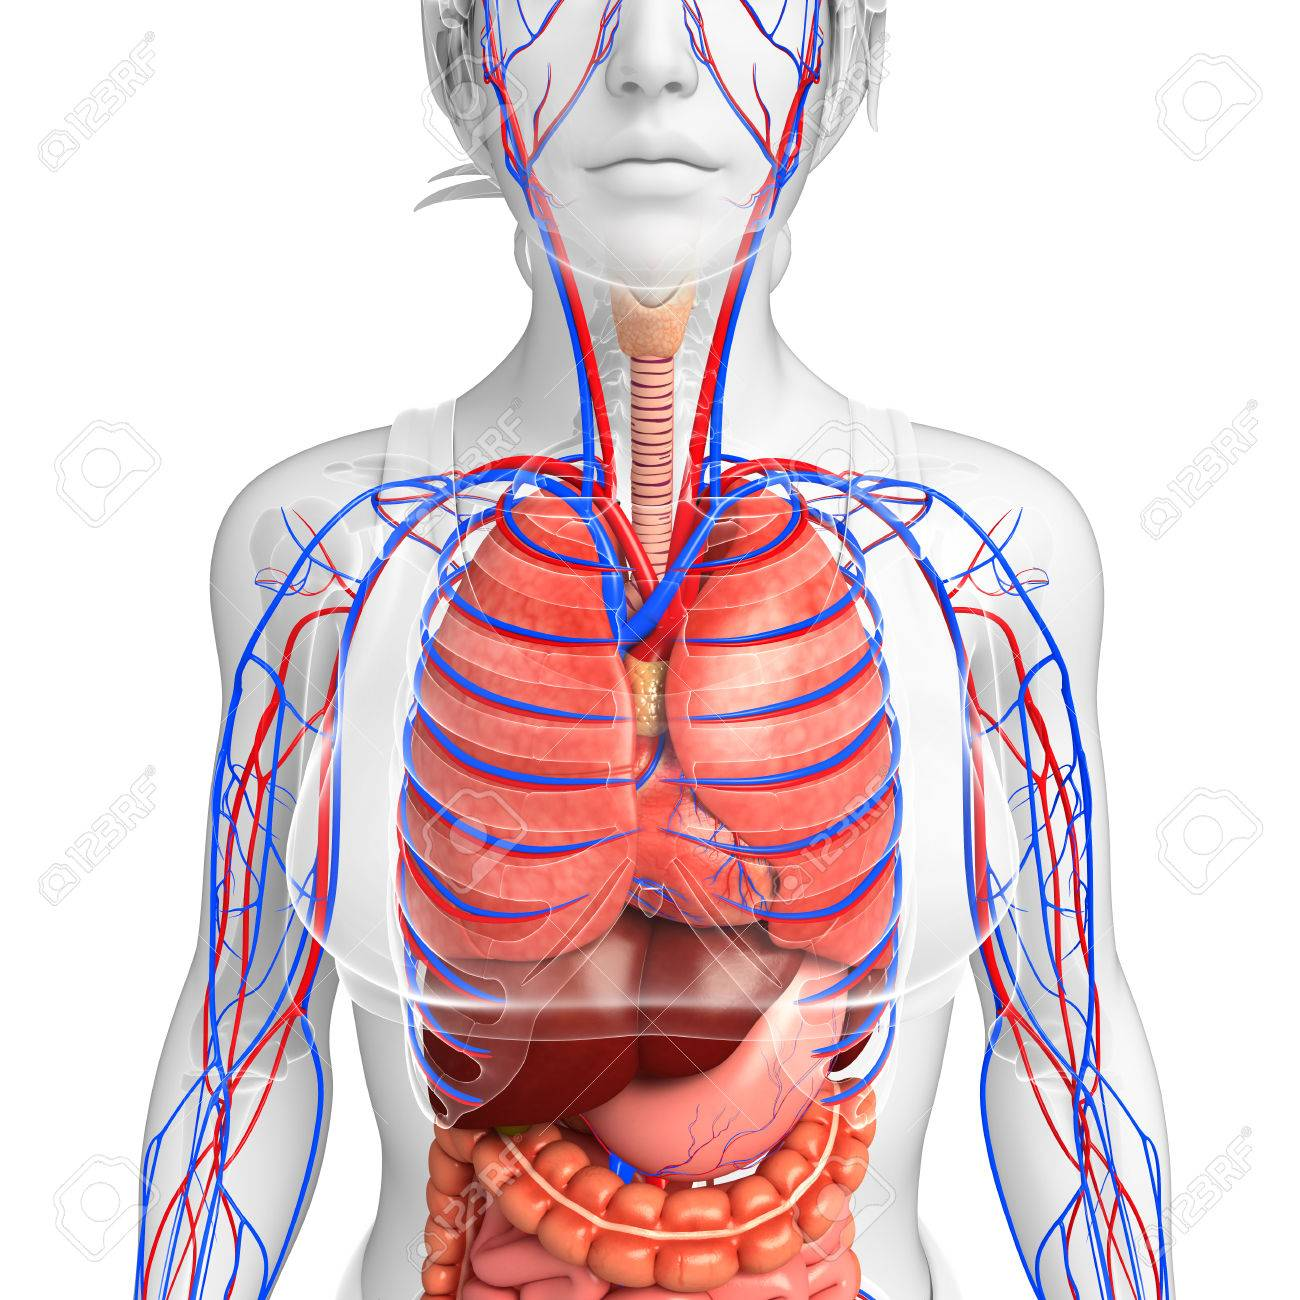 Digestive and circulatory system of female body artwork stock photo digestive and circulatory system of female body artwork stock photo 44273383 ccuart Image collections